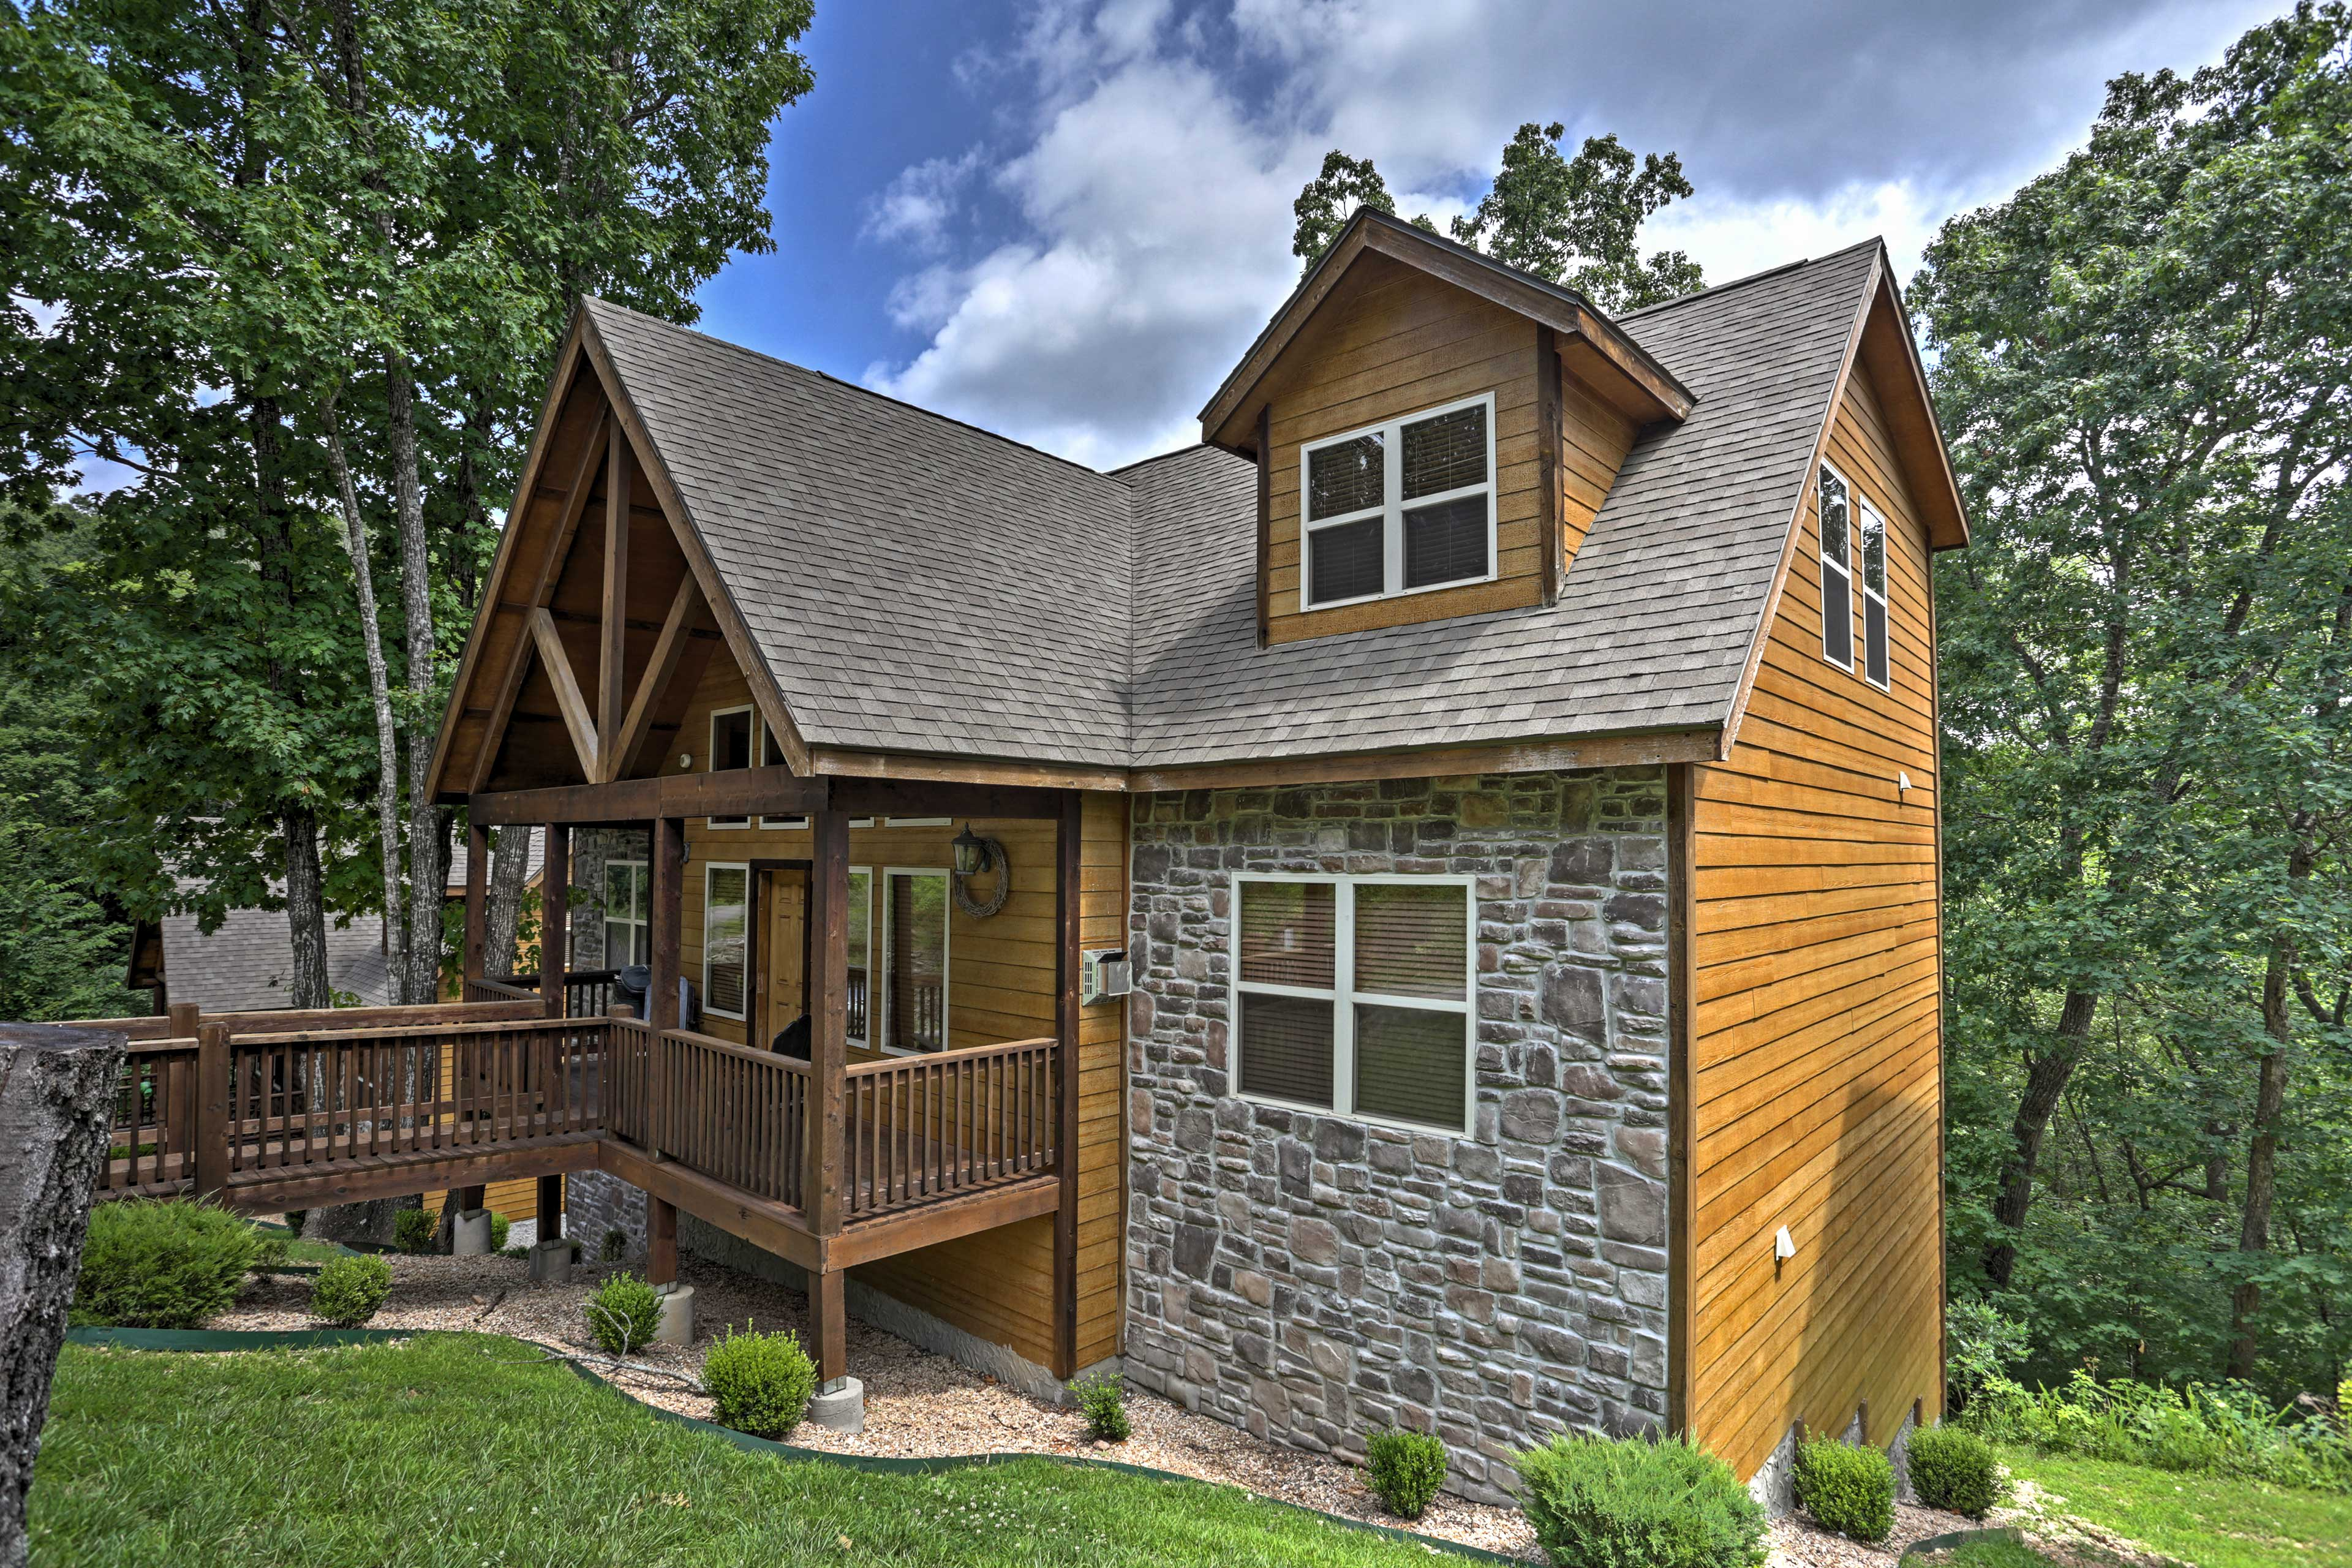 Branson Vacation Rental Home | 5BR | 5BA | 4,100 Sq Ft | No Steps Required